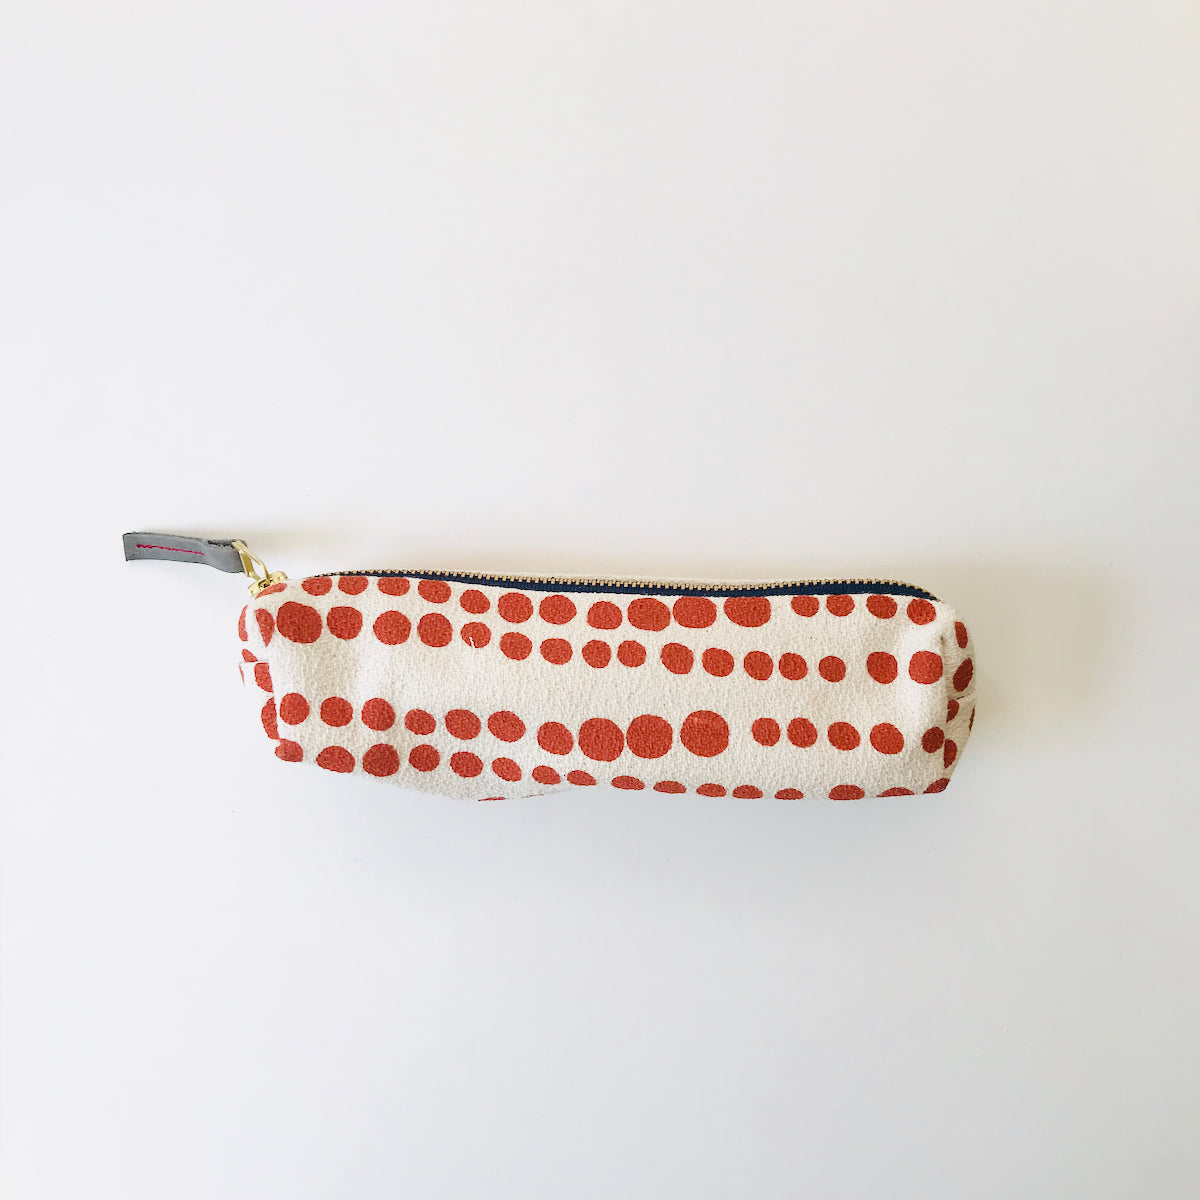 SHIPS NOW! TOMATO HILARY PENCIL ZIPPER BAG